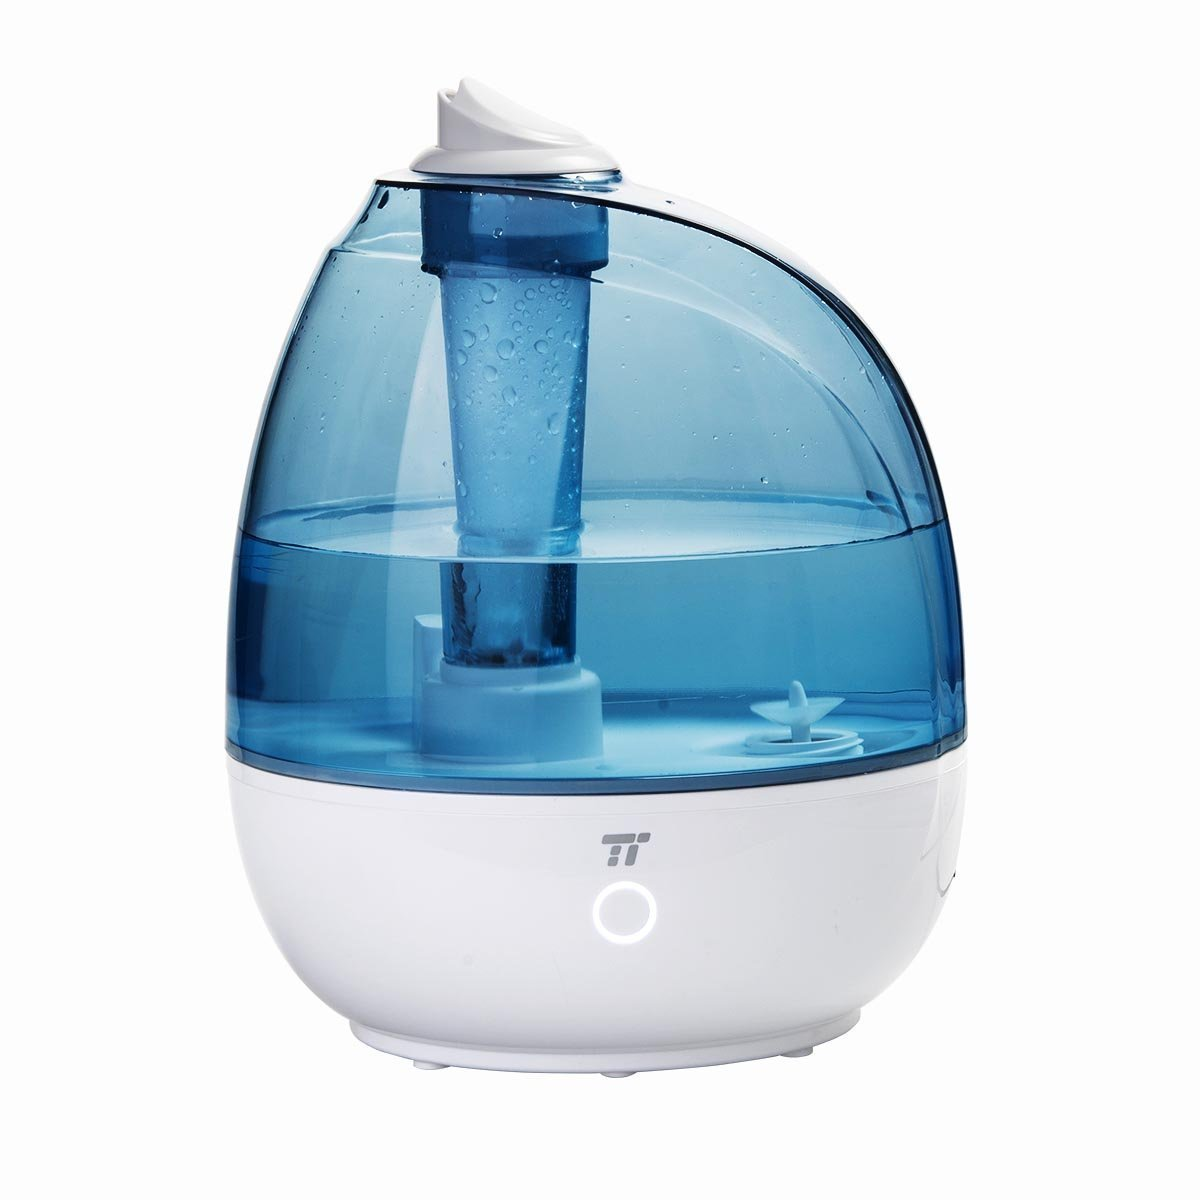 TaoTronics 2L Cool Mist Ultrasonic Humidifiers, Sleep Mode, Filter Free, Quiet for Baby Room & Bedroom (Certified Refurbished)